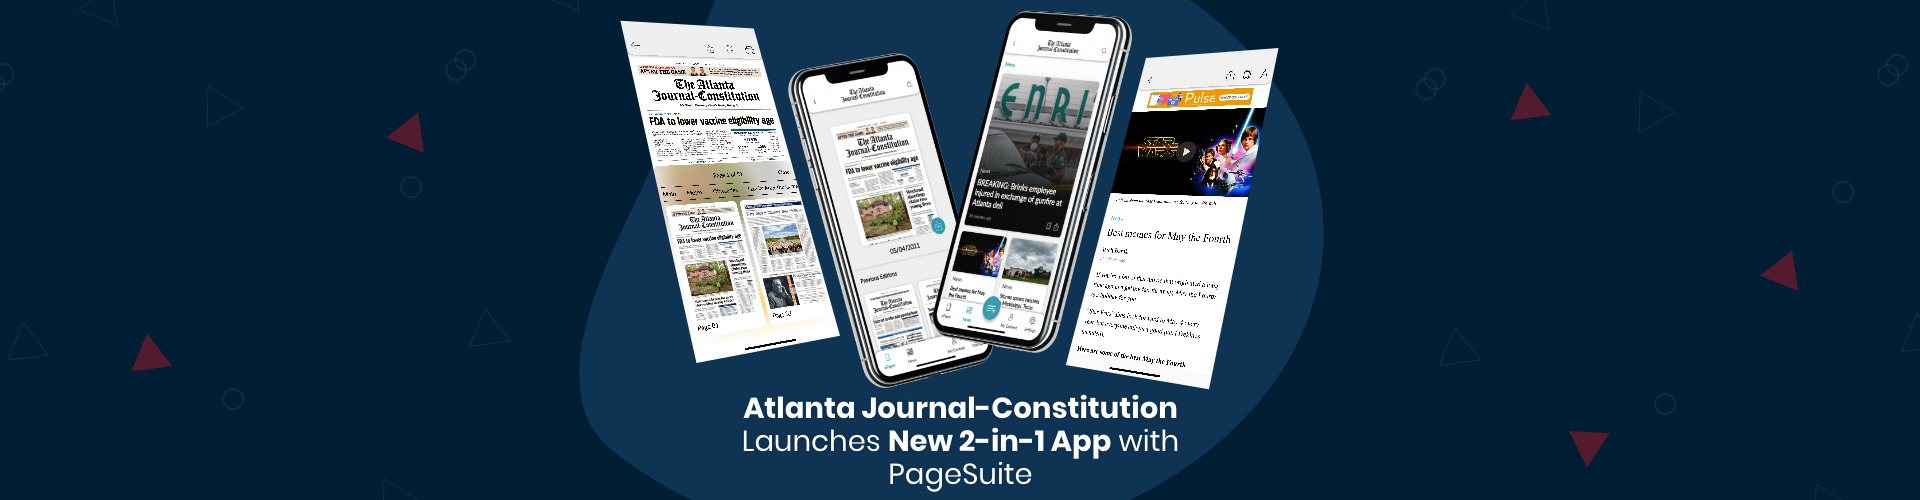 Press Release: Atlanta Journal-Constitution Launches New 2-in-1 App with PageSuite